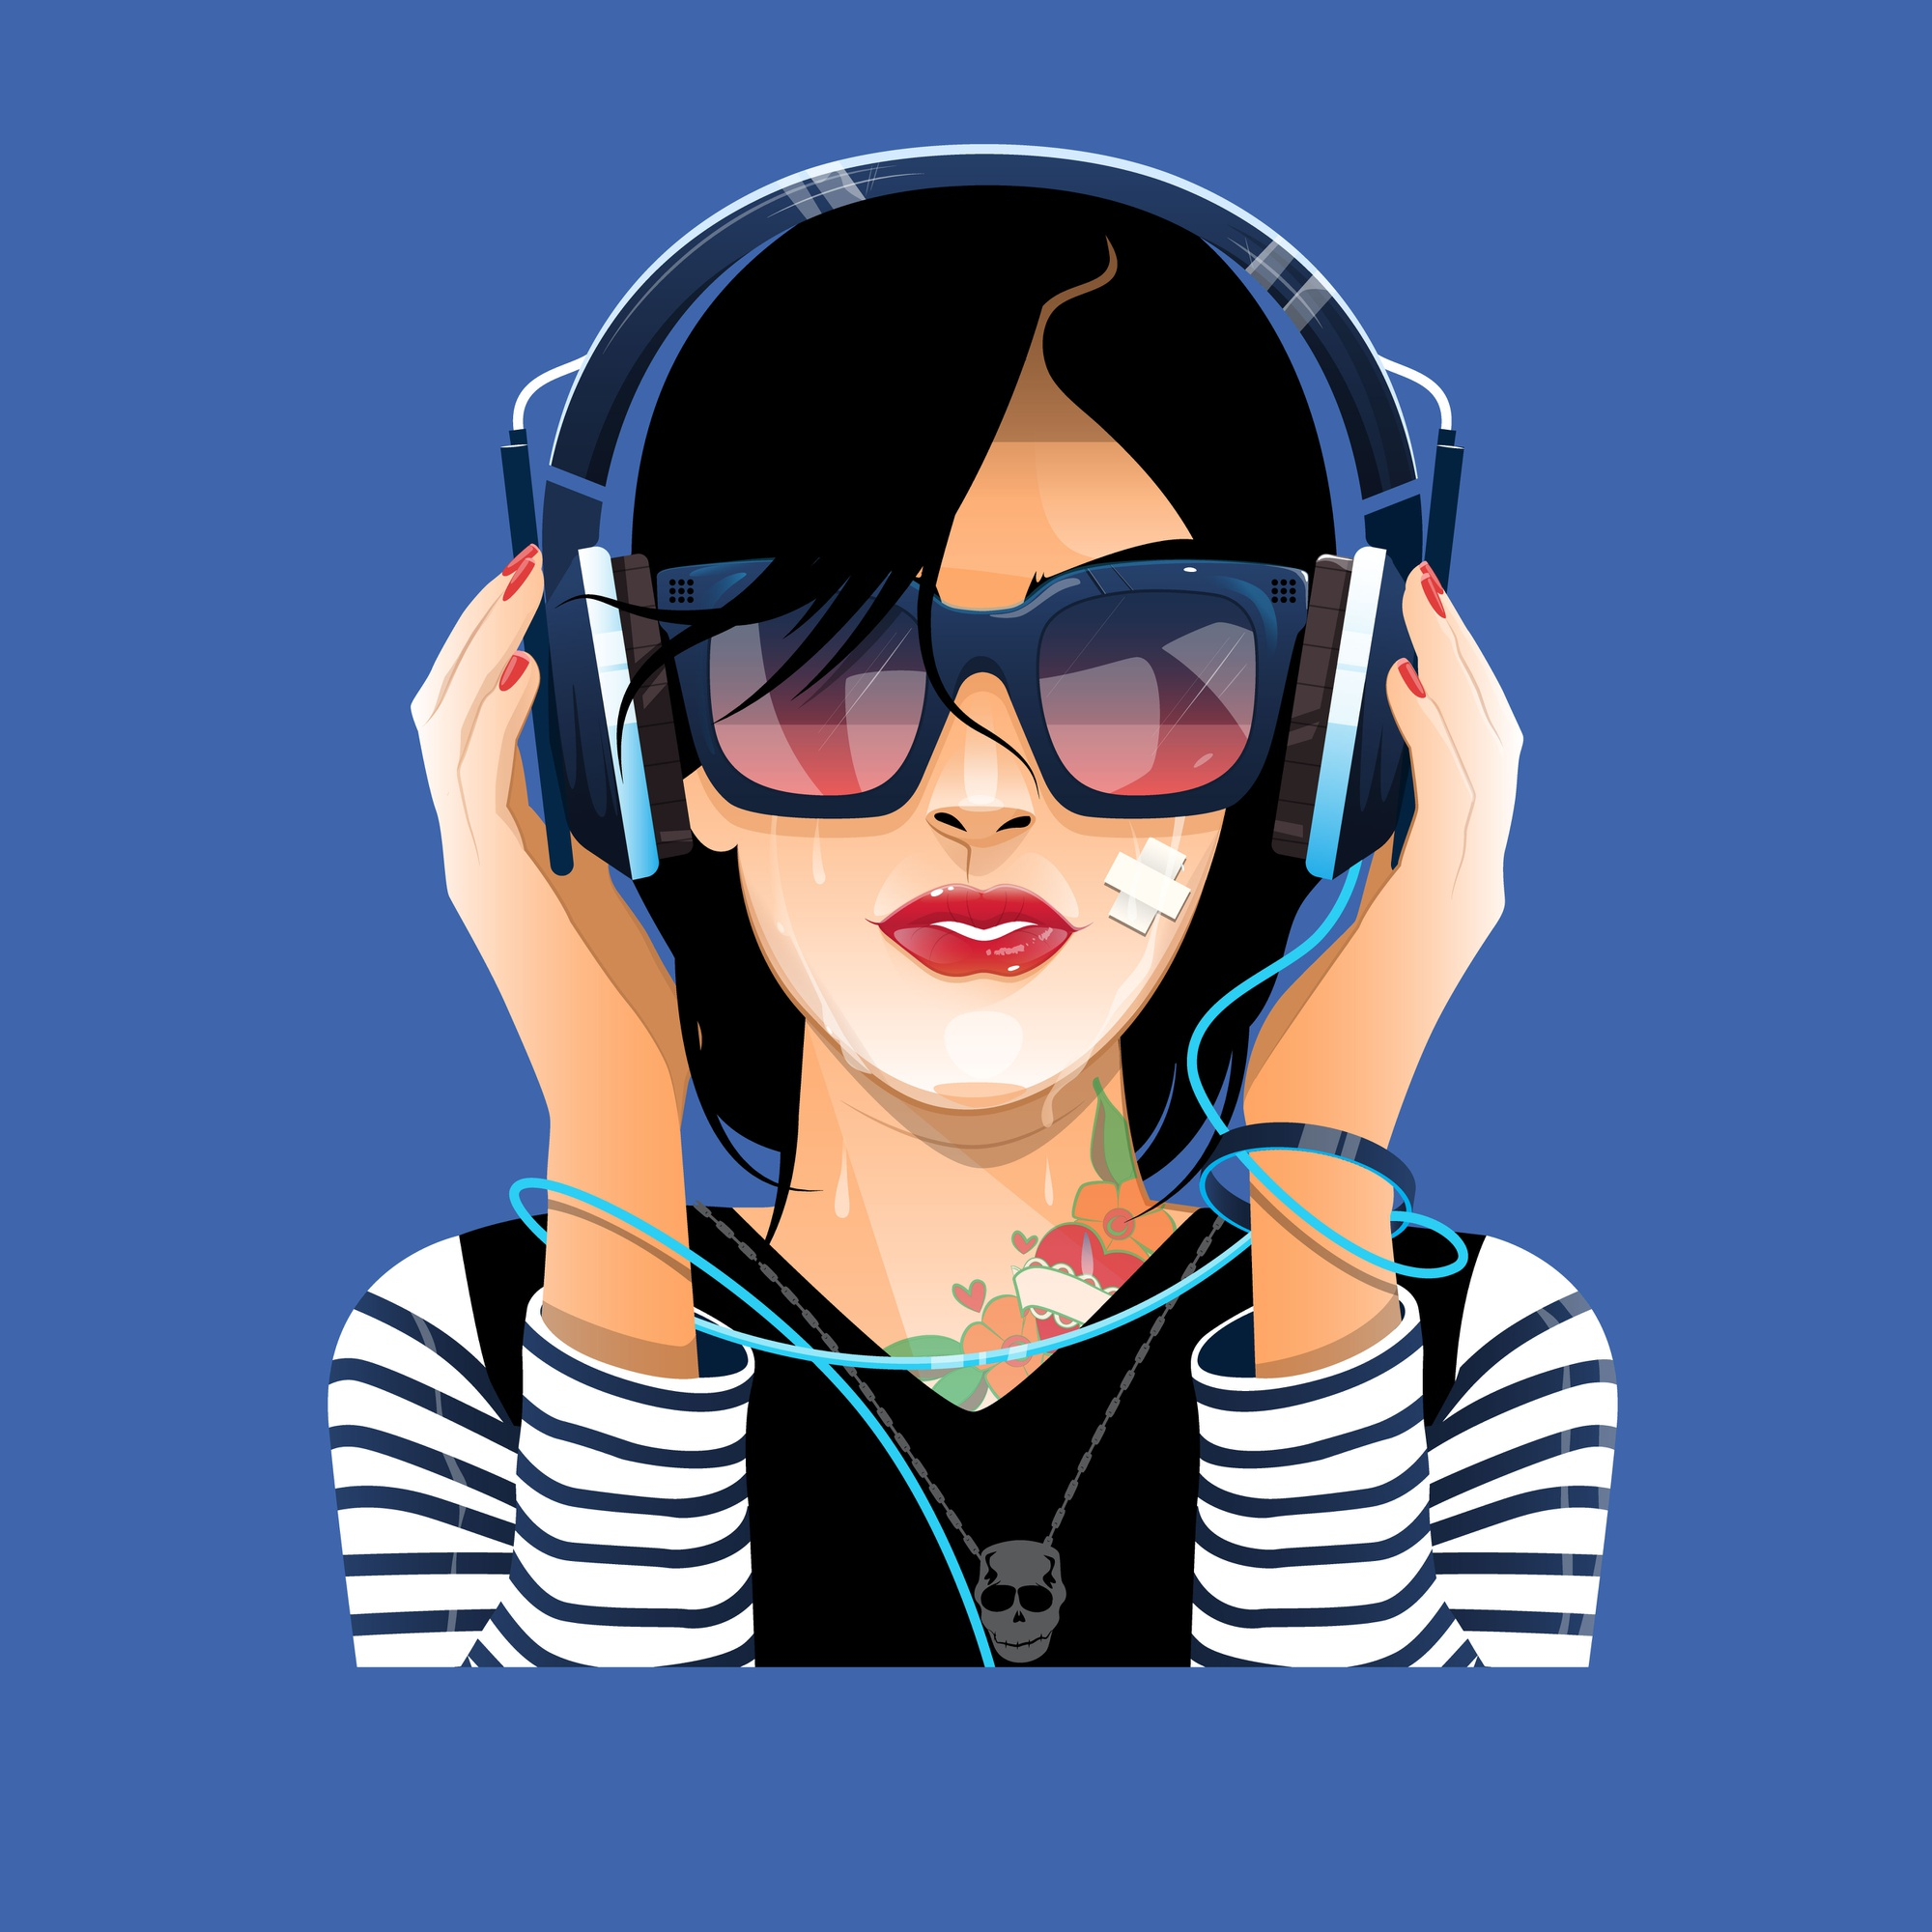 Lady in glasses with earphones listen to music